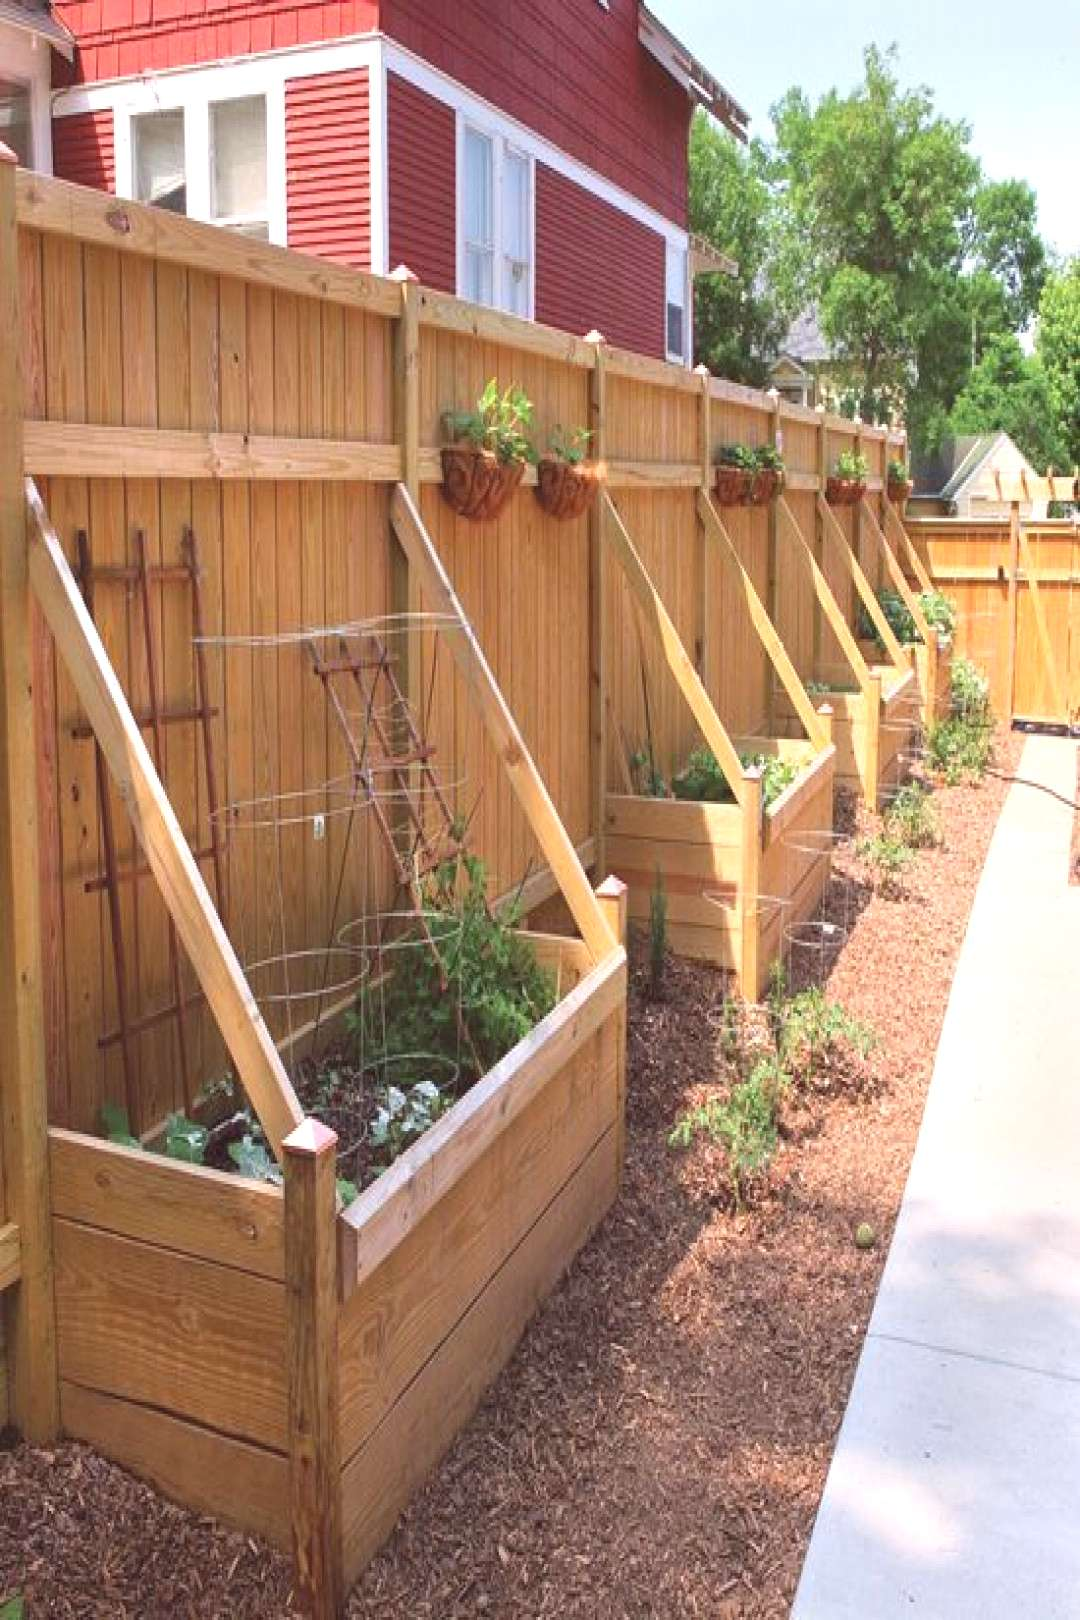 Build a container garden for vegetable gardening using full sun perennials and root vegetables. - G